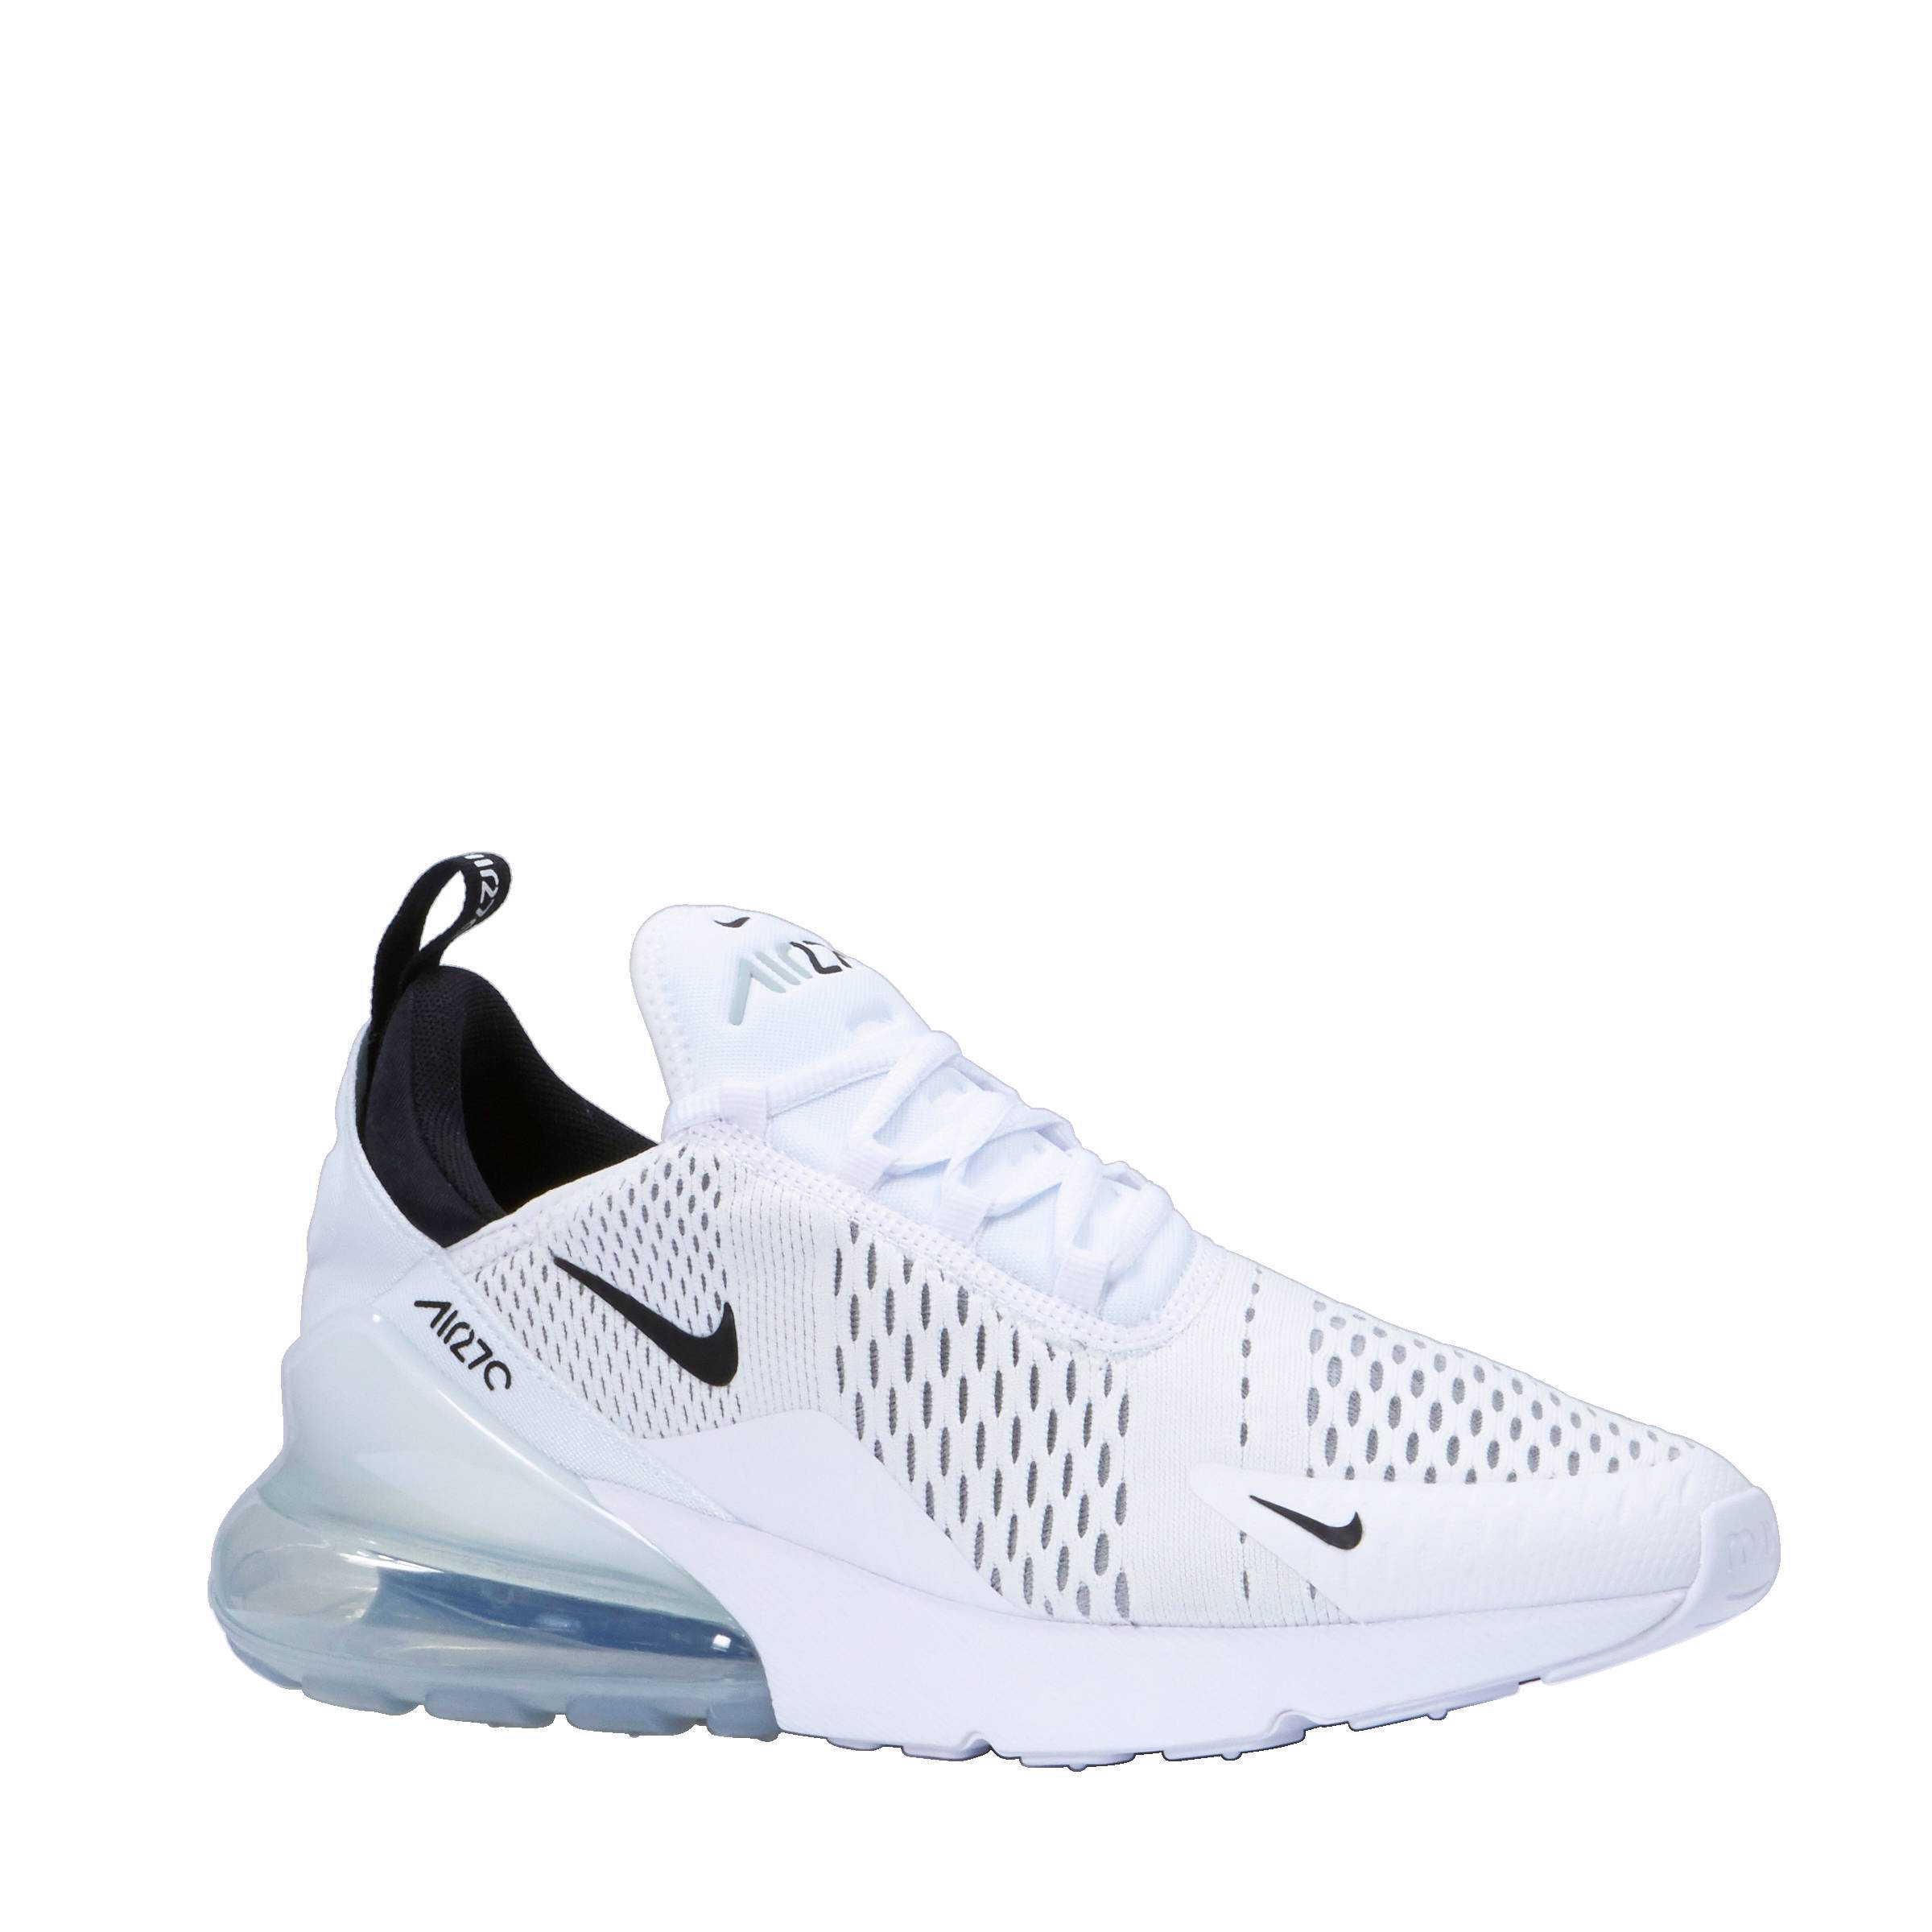 nike air max 270 dames wit zwart